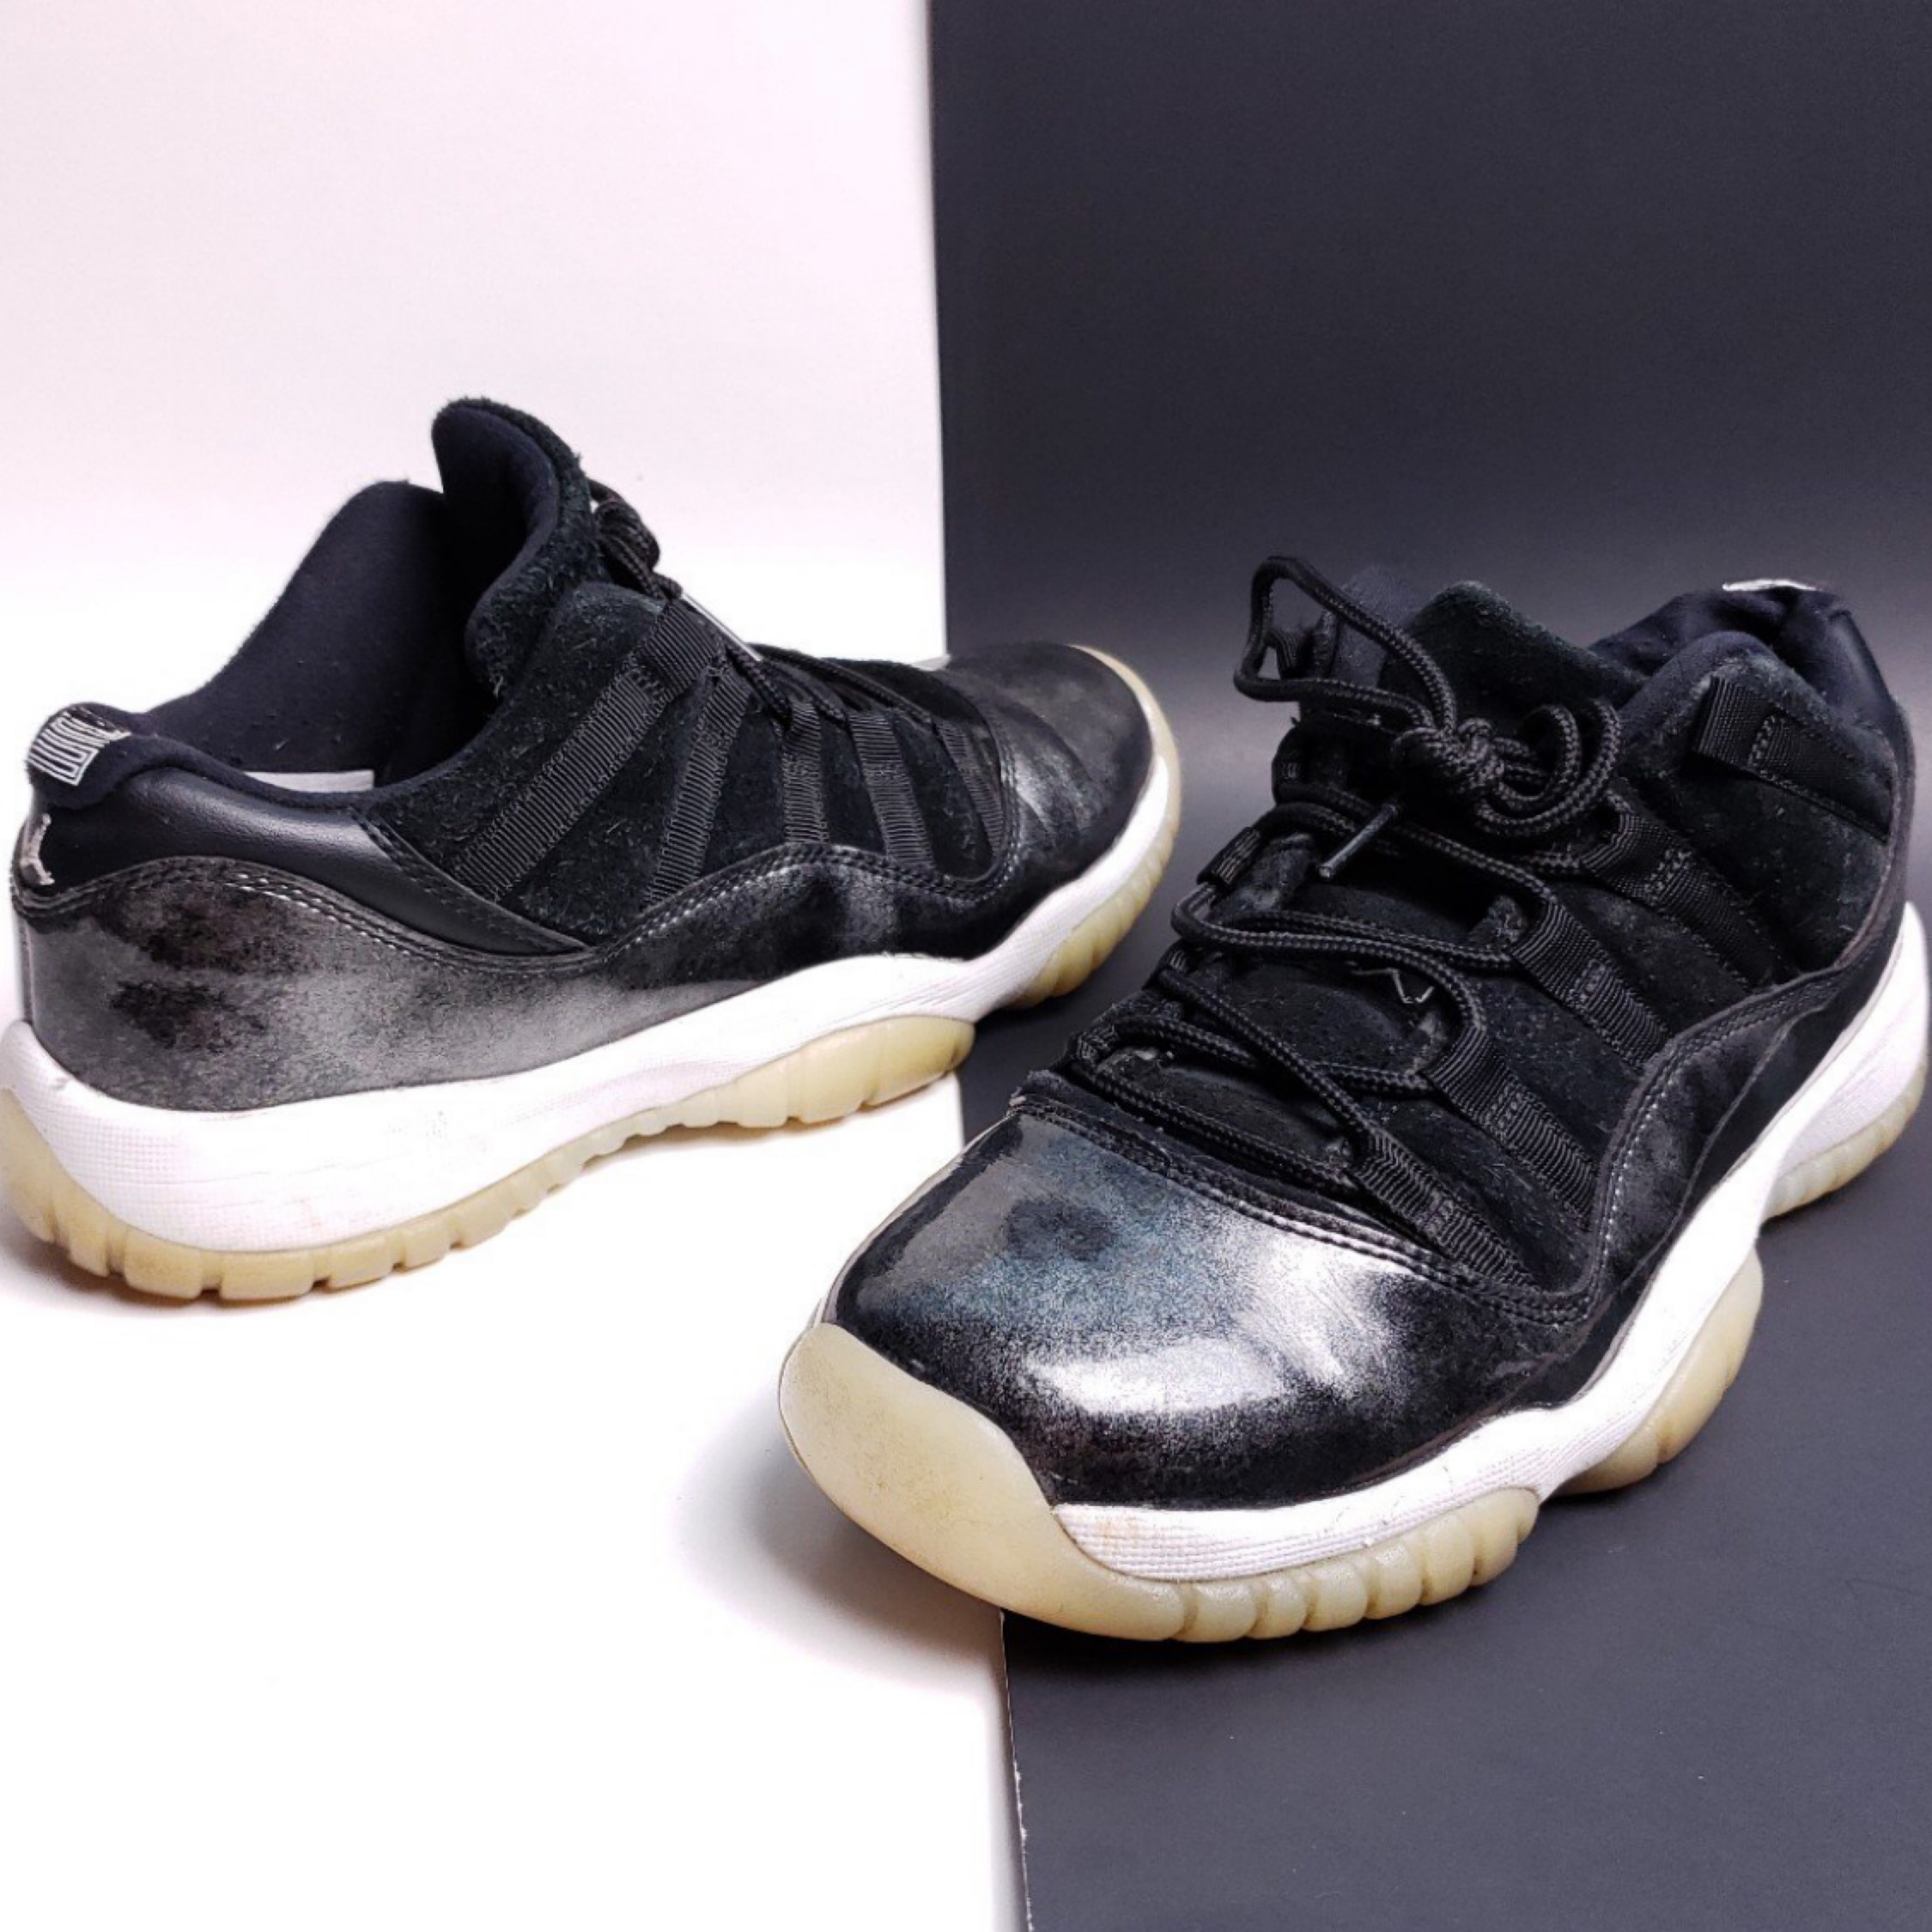 6a448b1ccb599e Nike Air Jordan 11 Retro Low